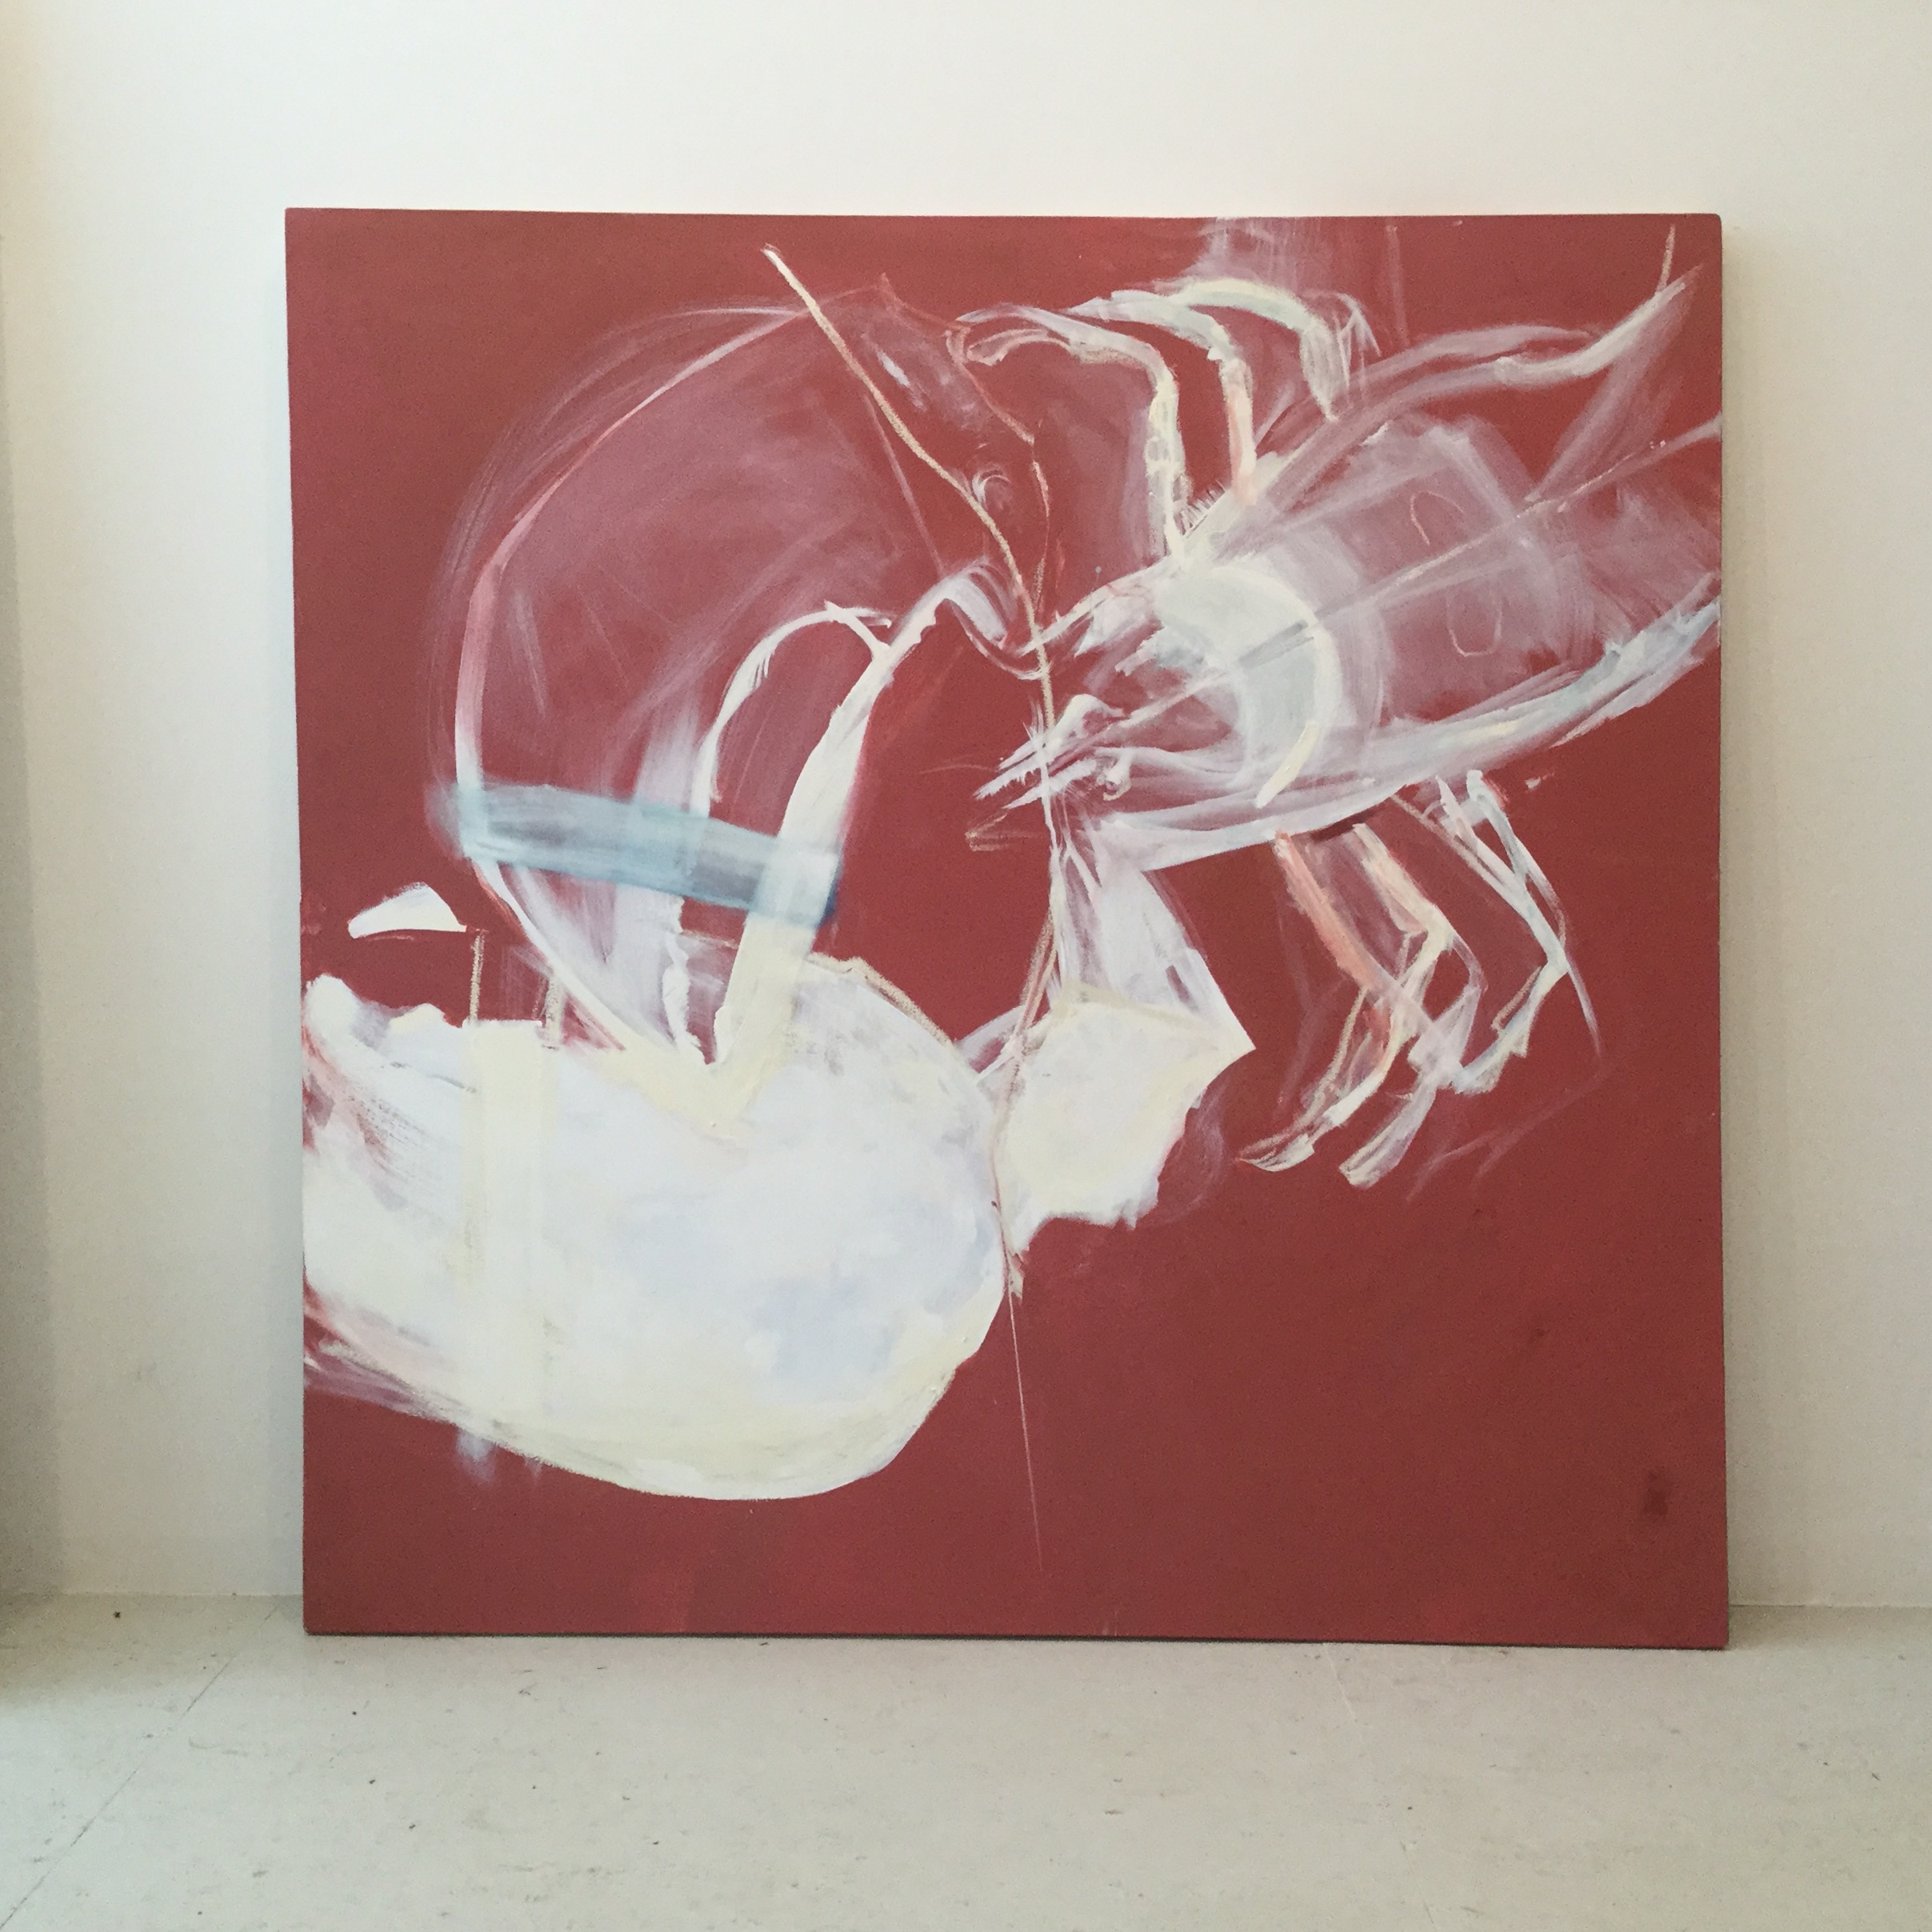 oil, liquid rubber and house paint on canvas 48x48